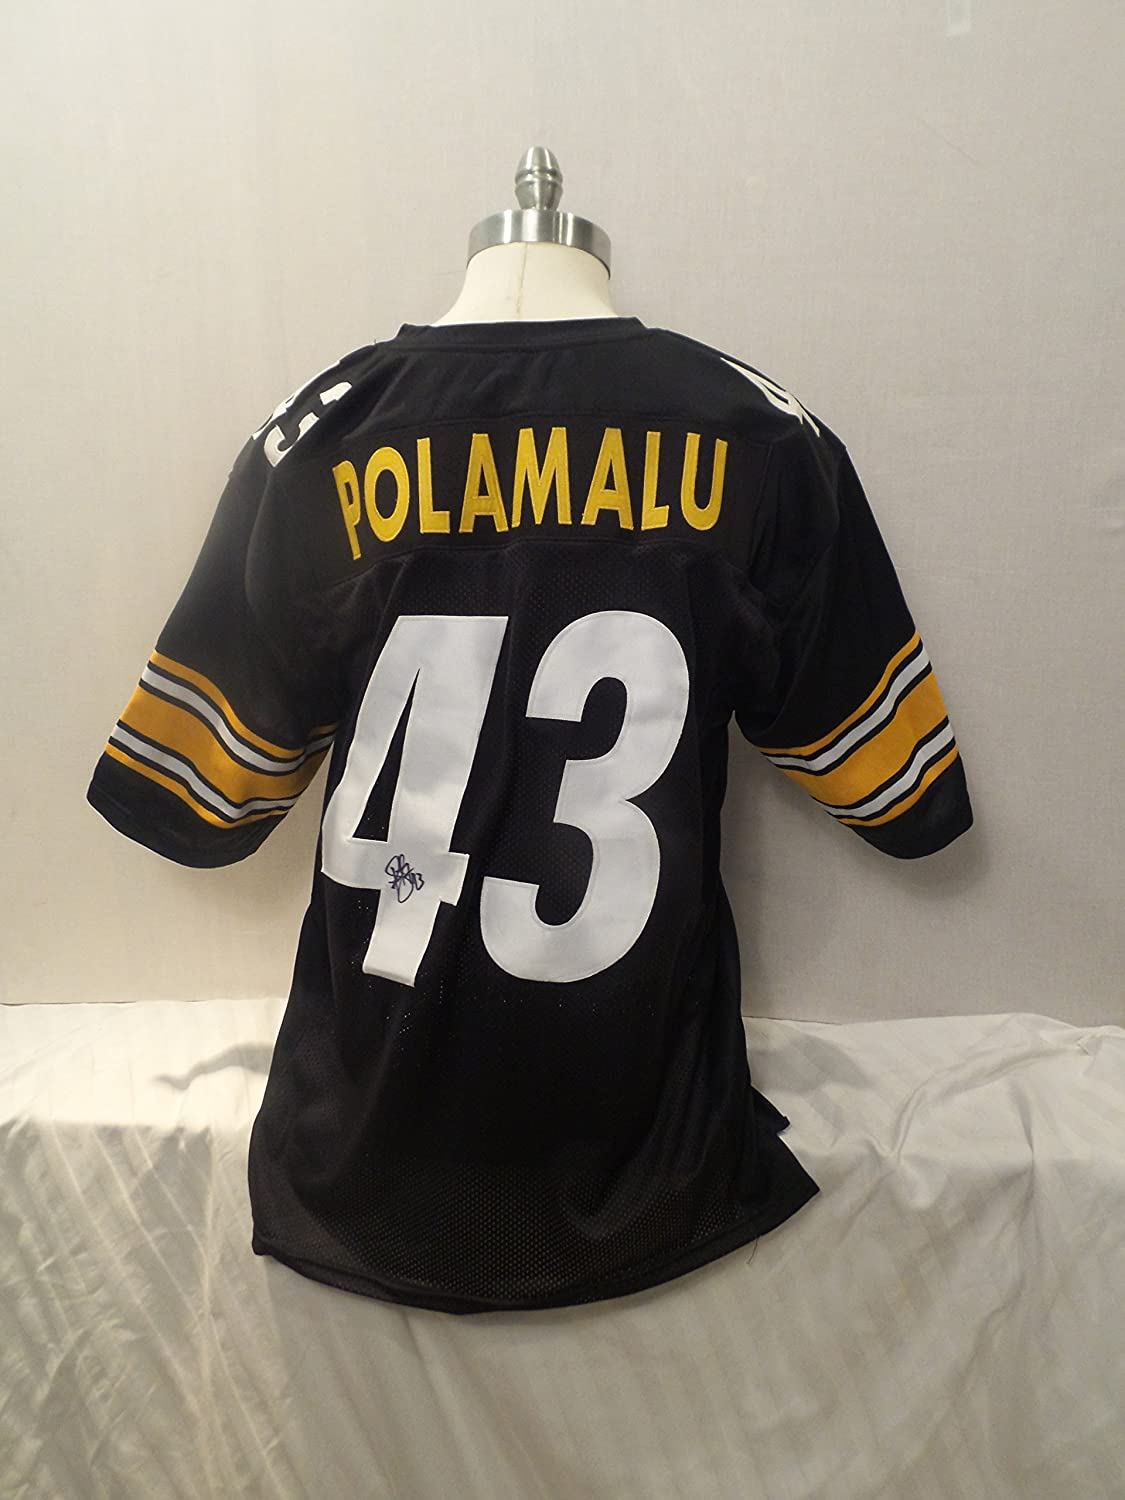 Troy Polamalu Signed Pittsburgh Steelers Black Autographed Jersey Novelty Custom Jersey